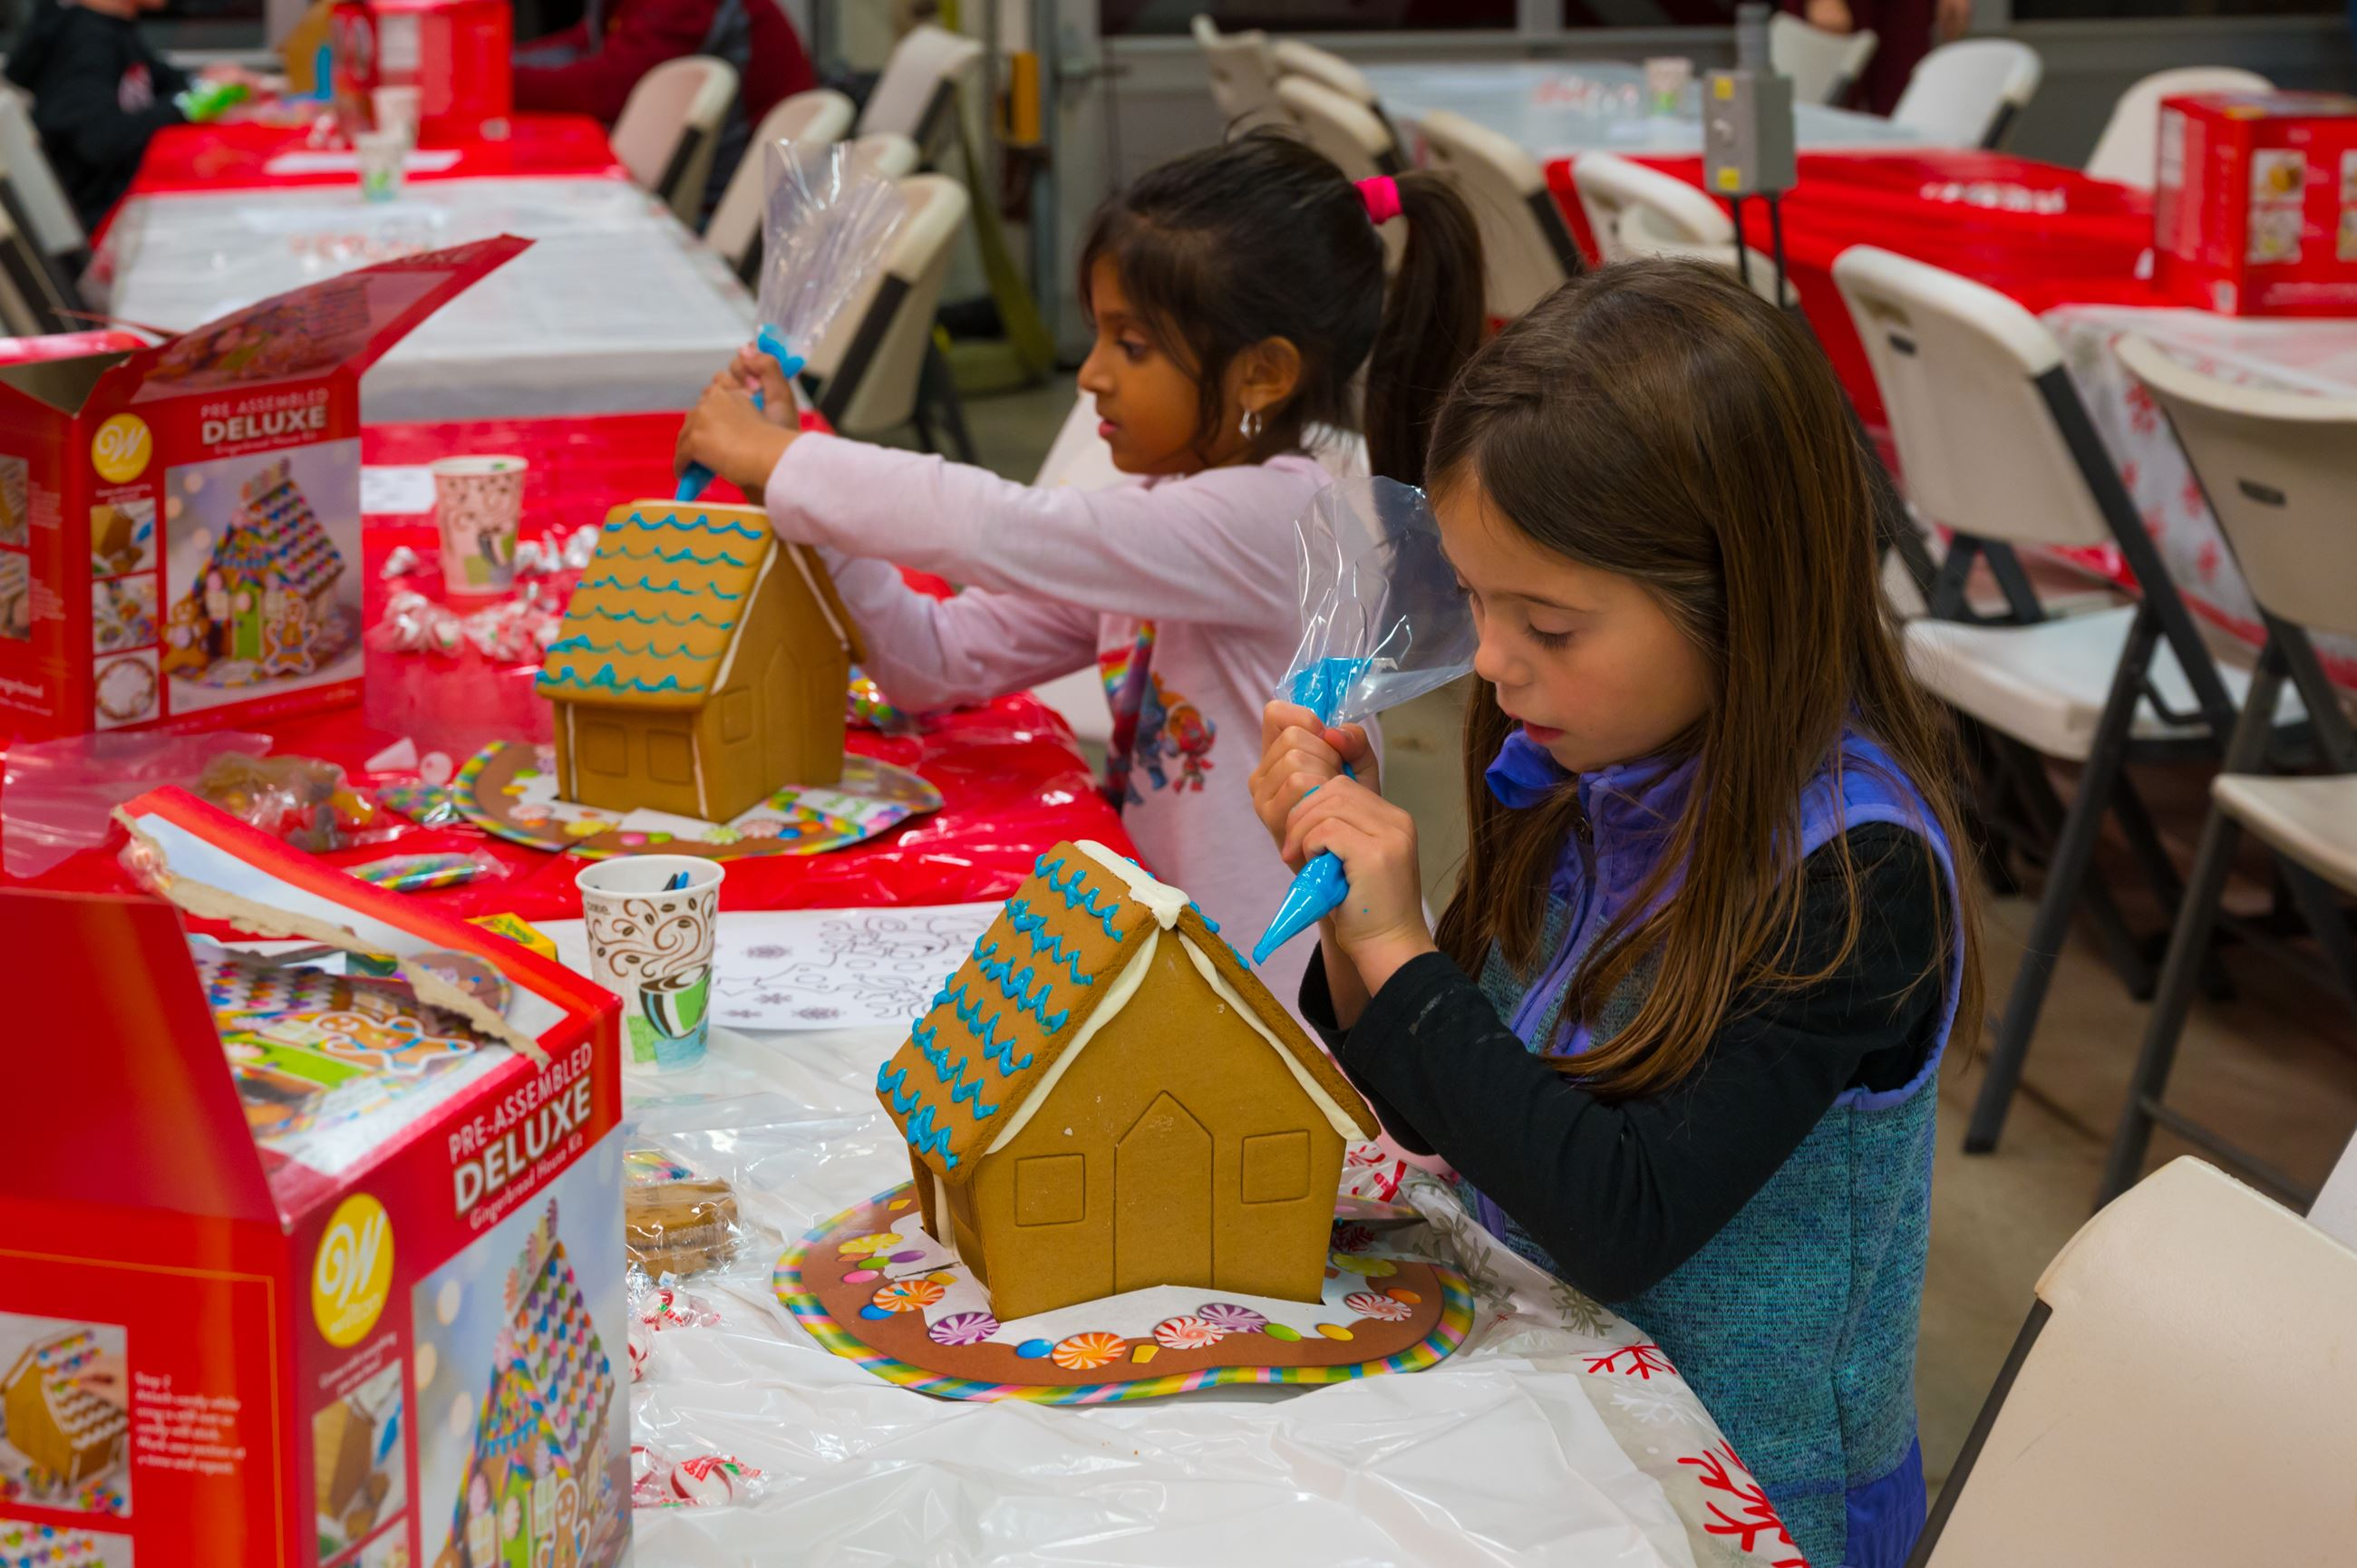 Two girls decorating a gingerbread house